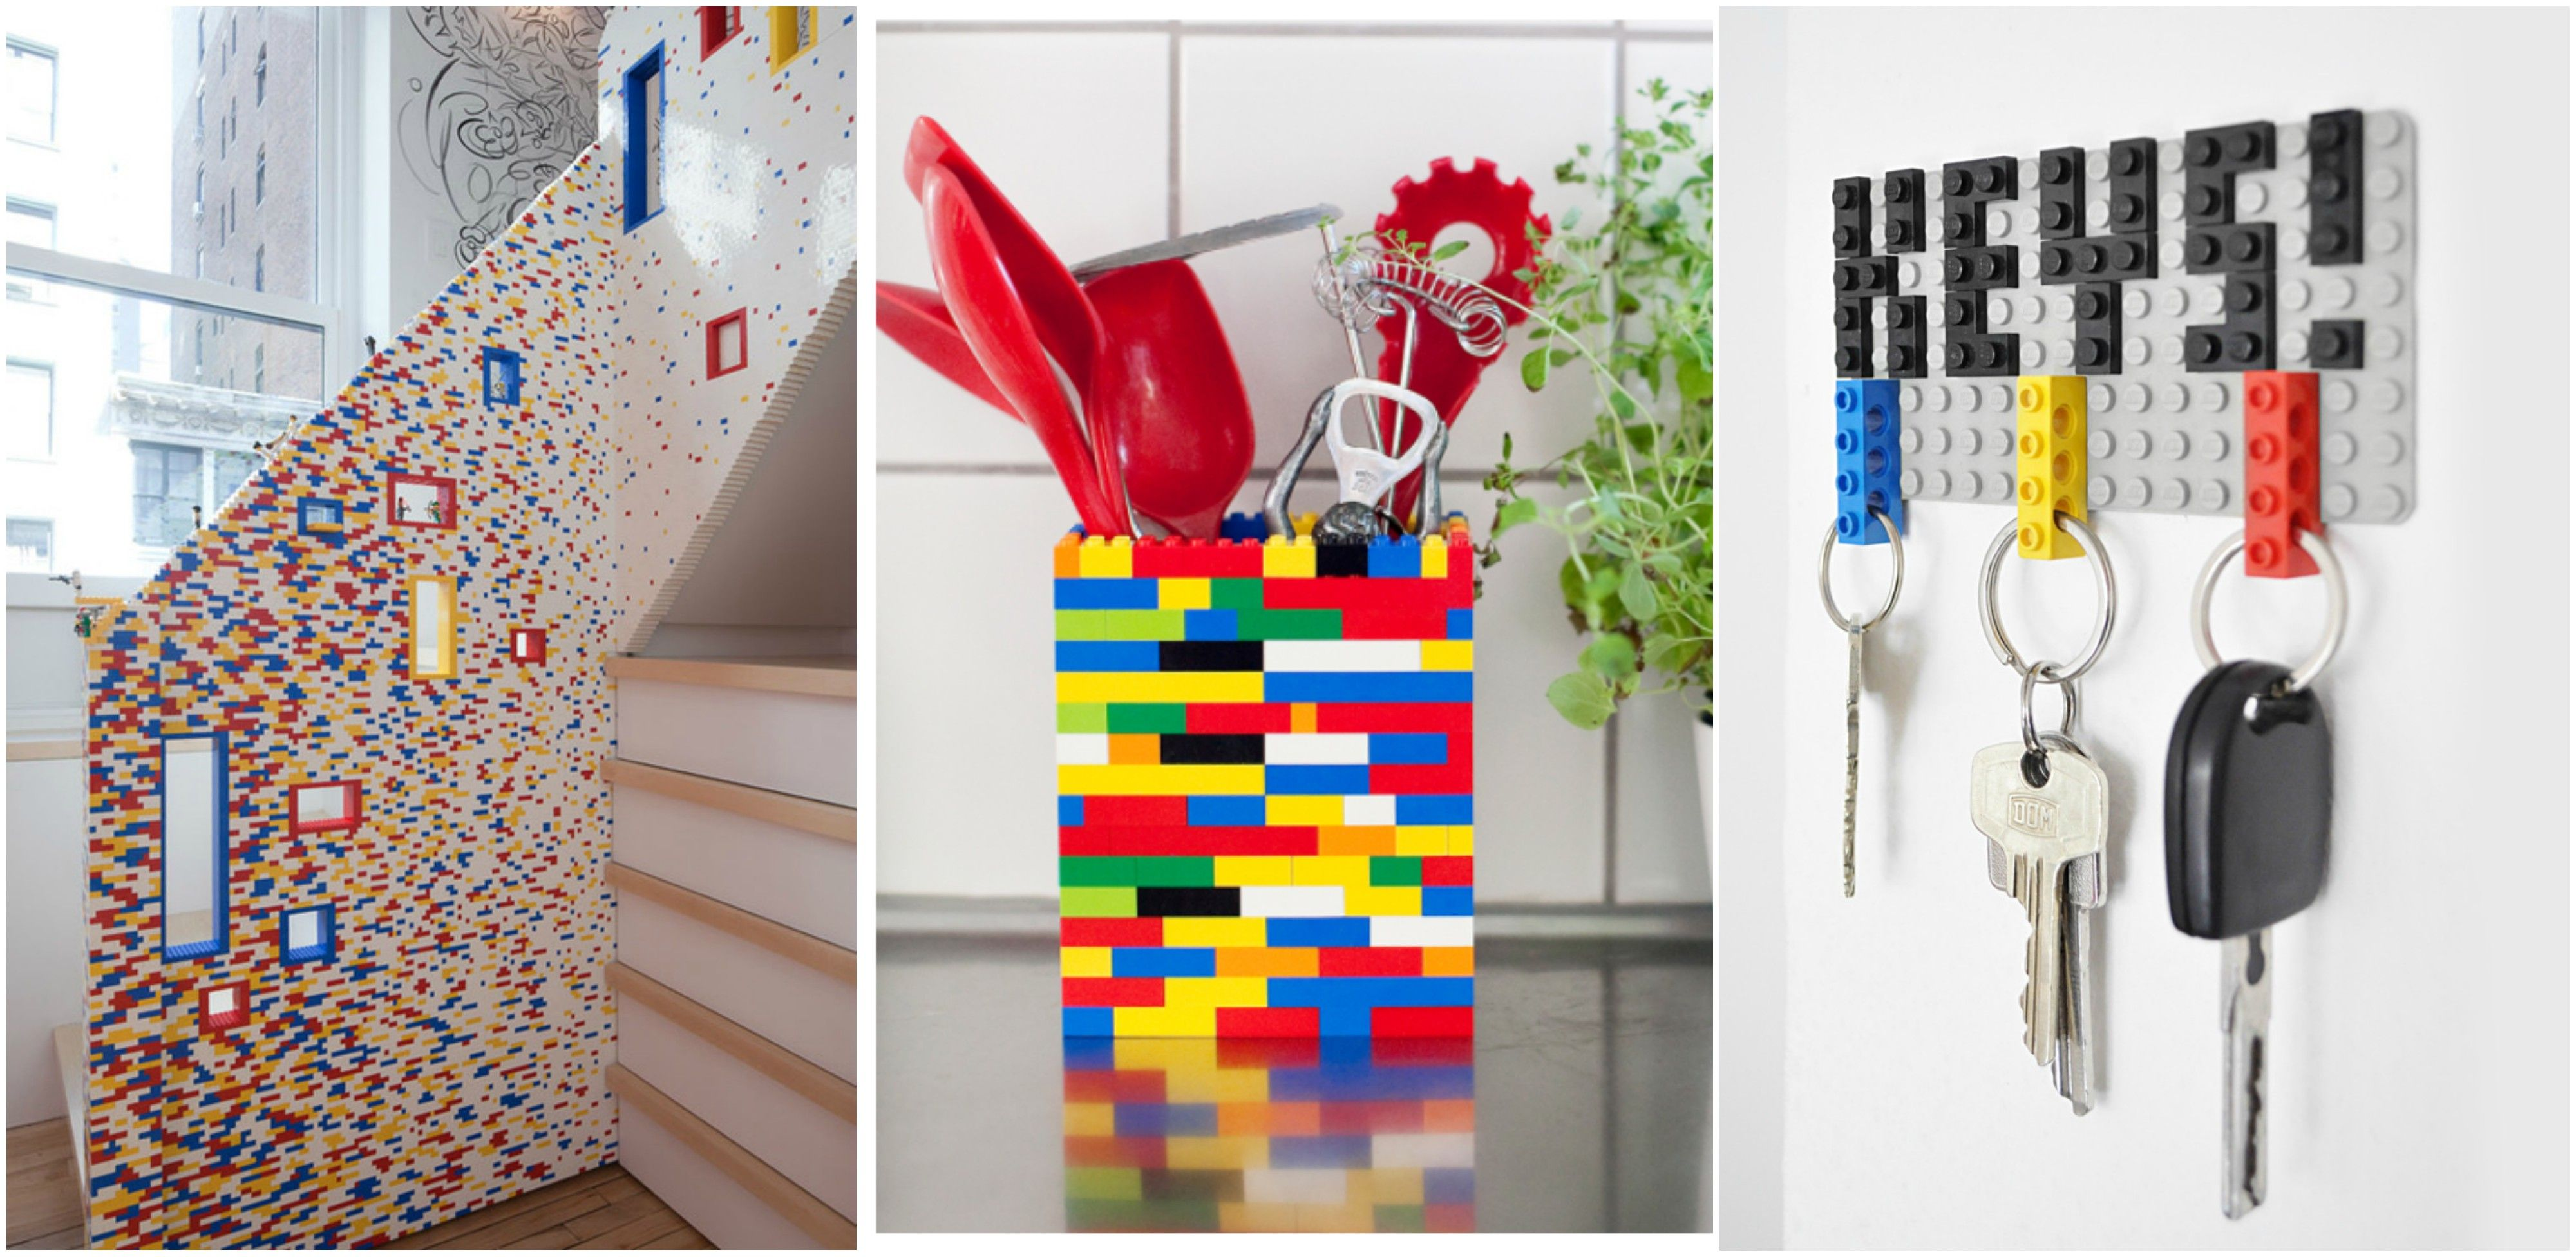 14 Clever Ways To Use Lego In The Home